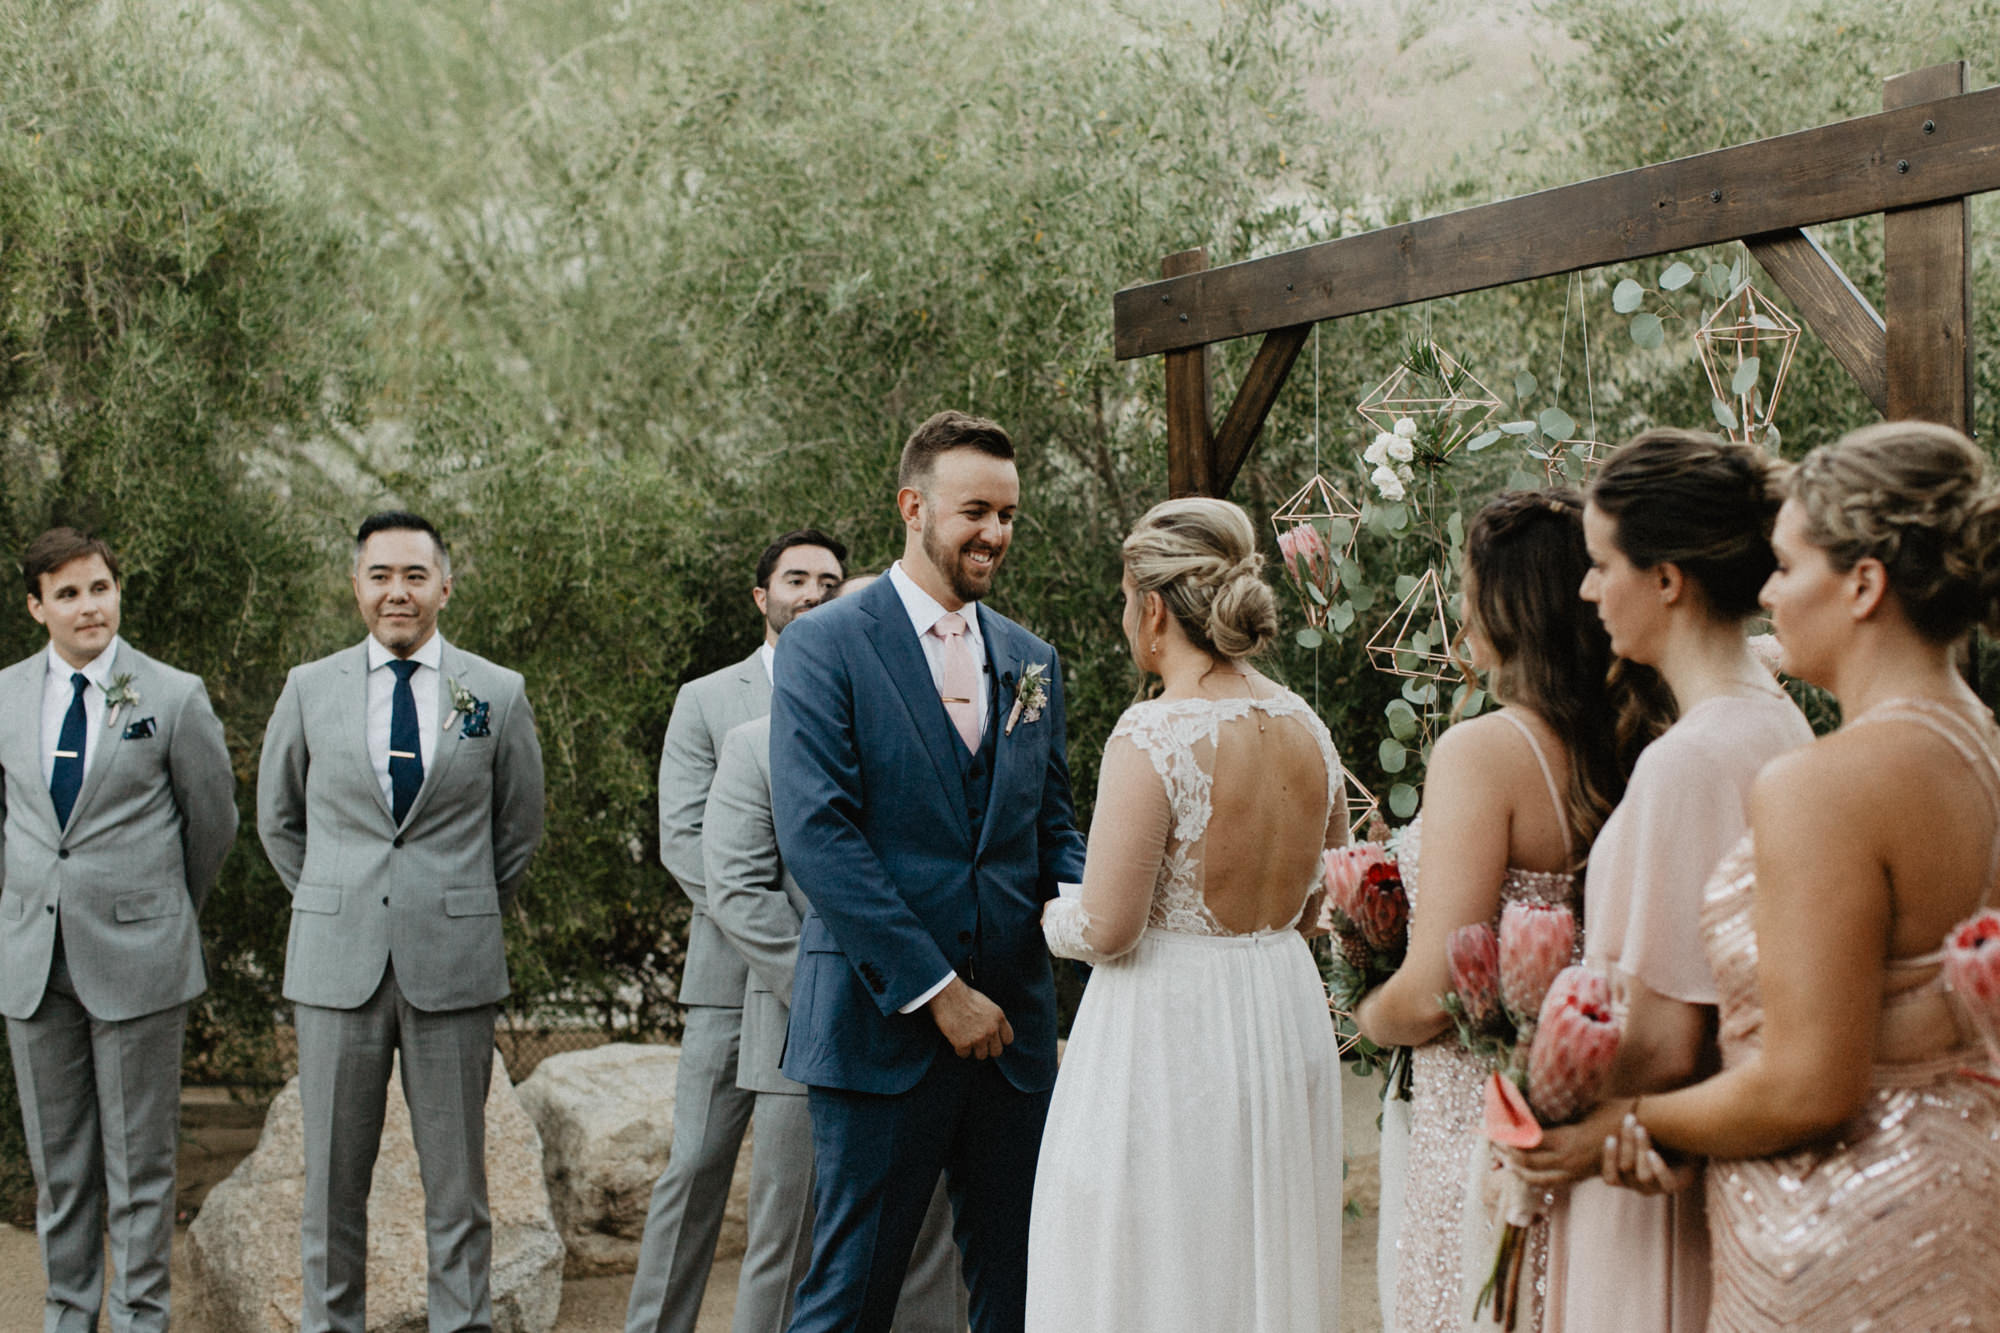 ace_hotel_palm_springs_wedding-91.jpg